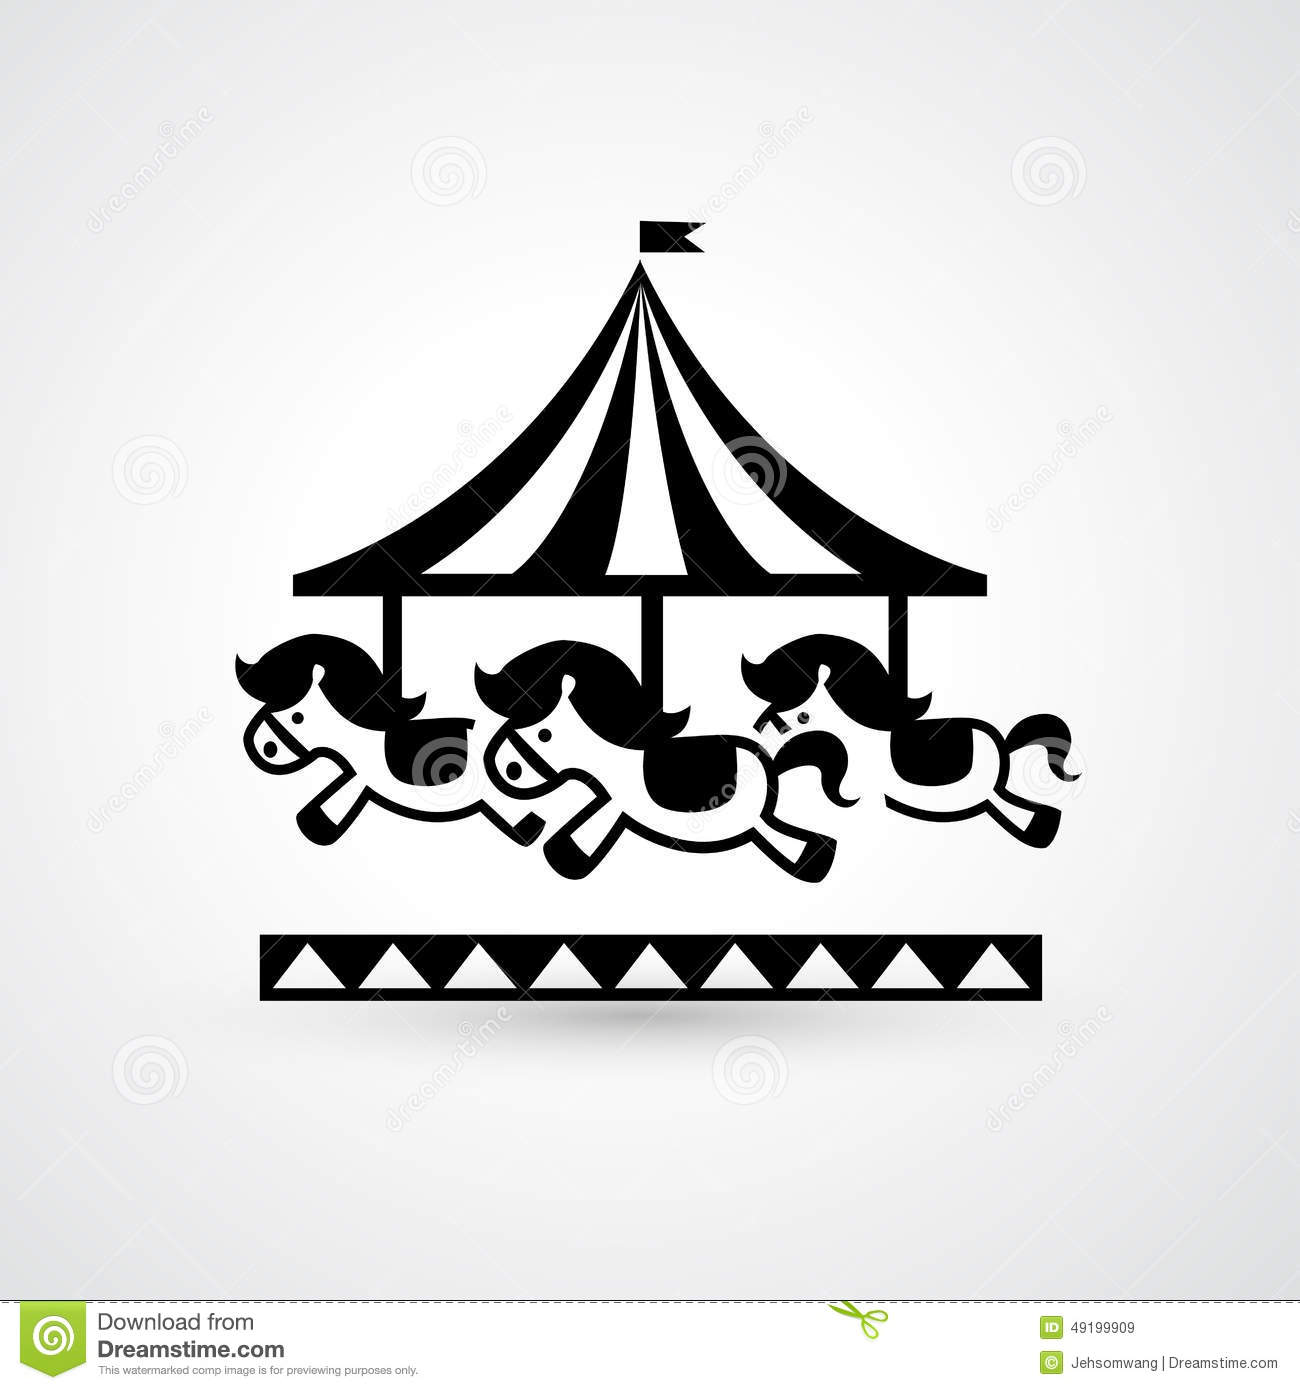 Vintage Merry-go-round Carousel Icon Stock Vector - Image: 49199909